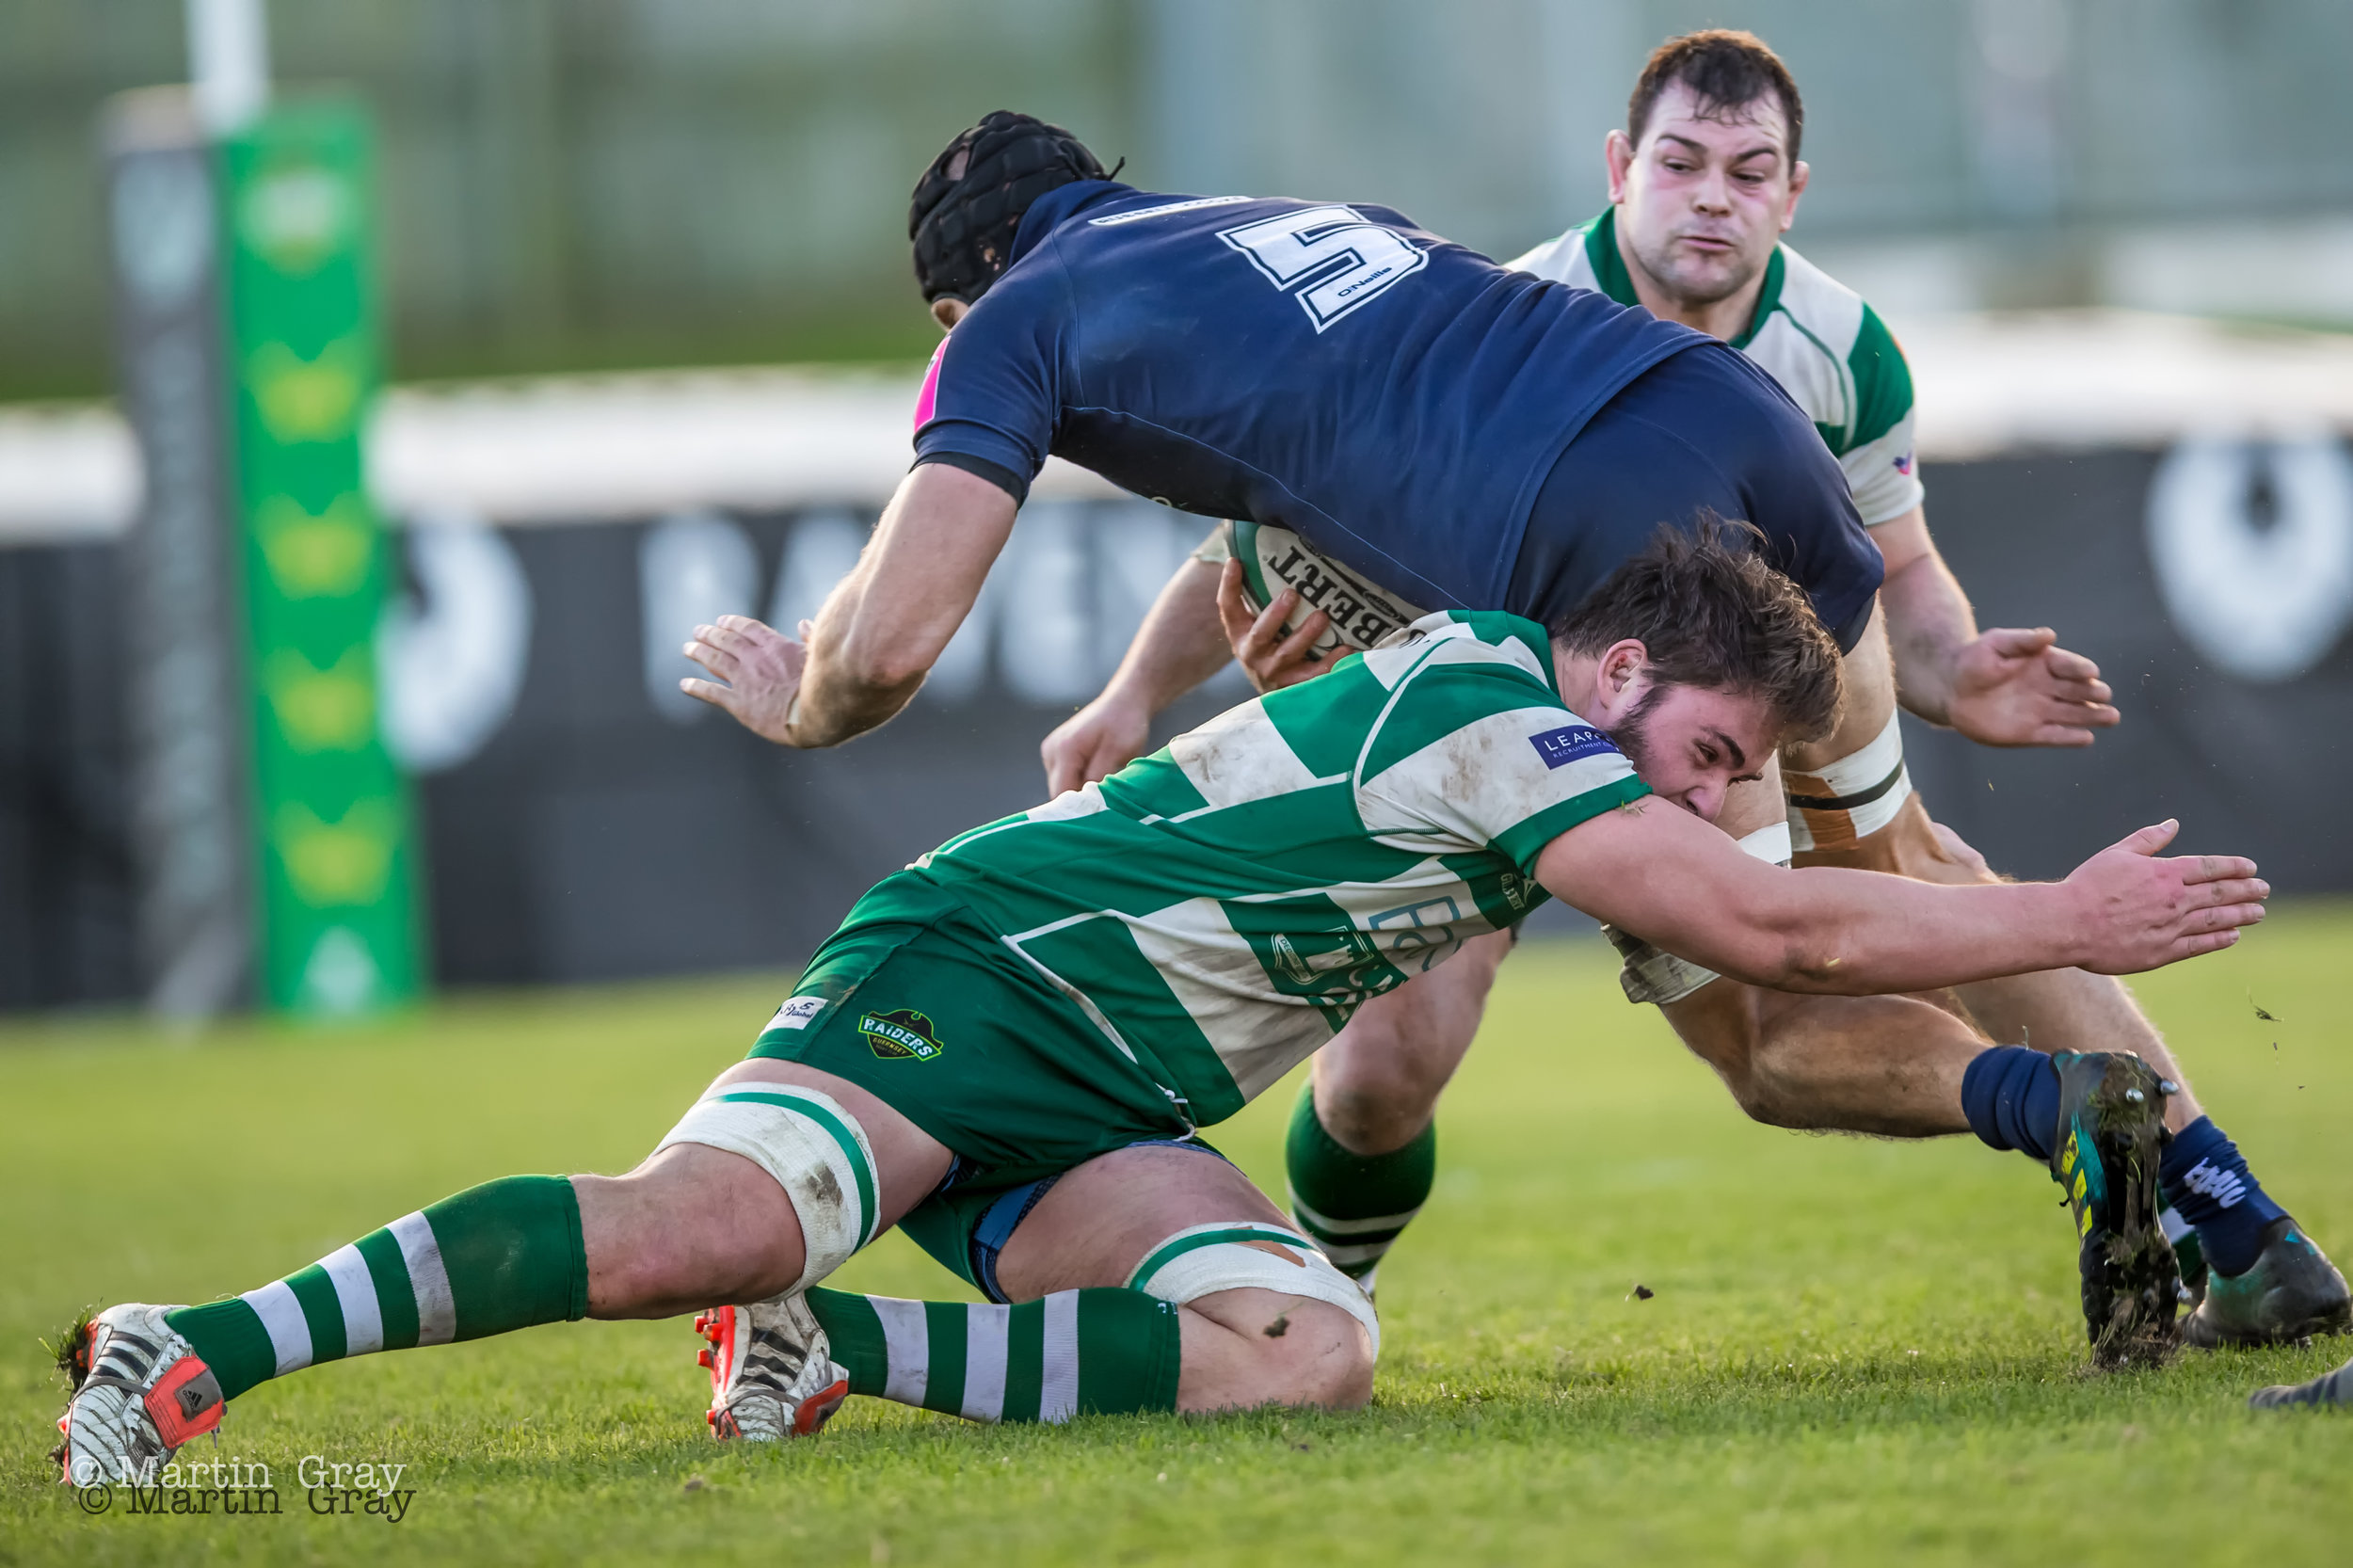 Guernsey Raiders v Barnes RFC played at Footes Lane 19 th January 2019… Raiders win 22-21…